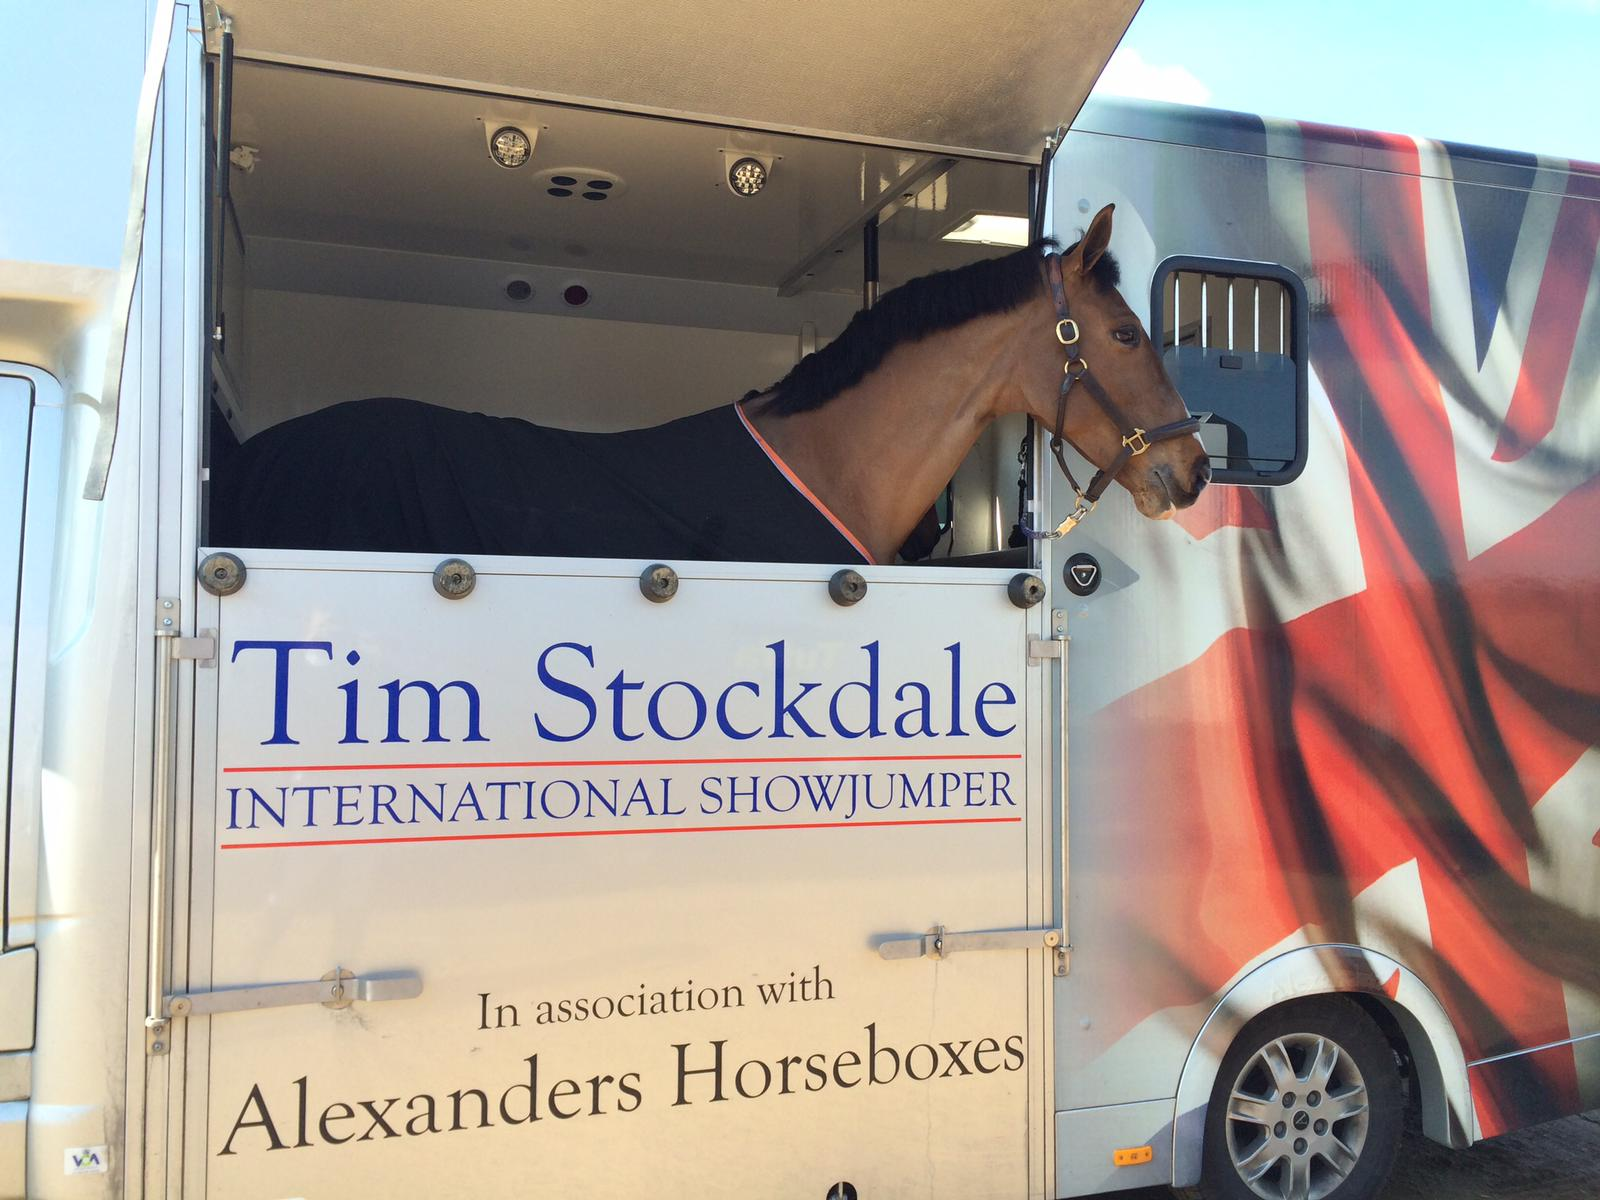 show jumping legend Tim Stockdale